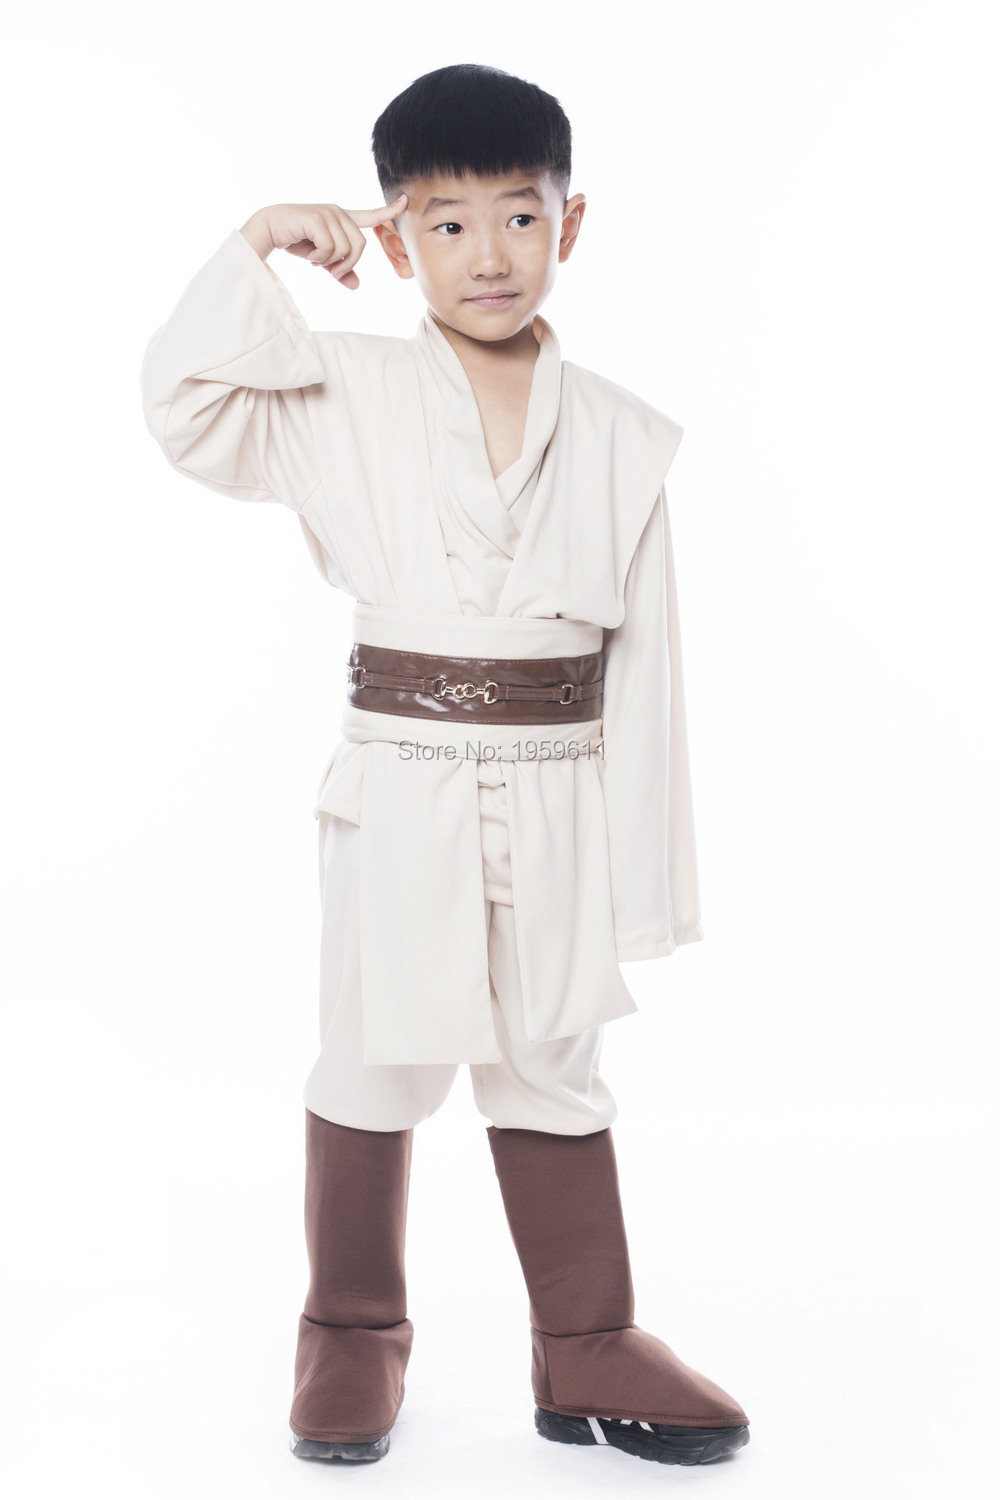 Kids STAR WARS Robe Jedi/Sith Cosplay Tunic Costume Obi Anakin Jedi Sith Karate Inside Suit Cosplay Costume With Belt-in Boys Costumes from Novelty ...  sc 1 st  AliExpress.com & Kids STAR WARS Robe Jedi/Sith Cosplay Tunic Costume Obi Anakin Jedi ...